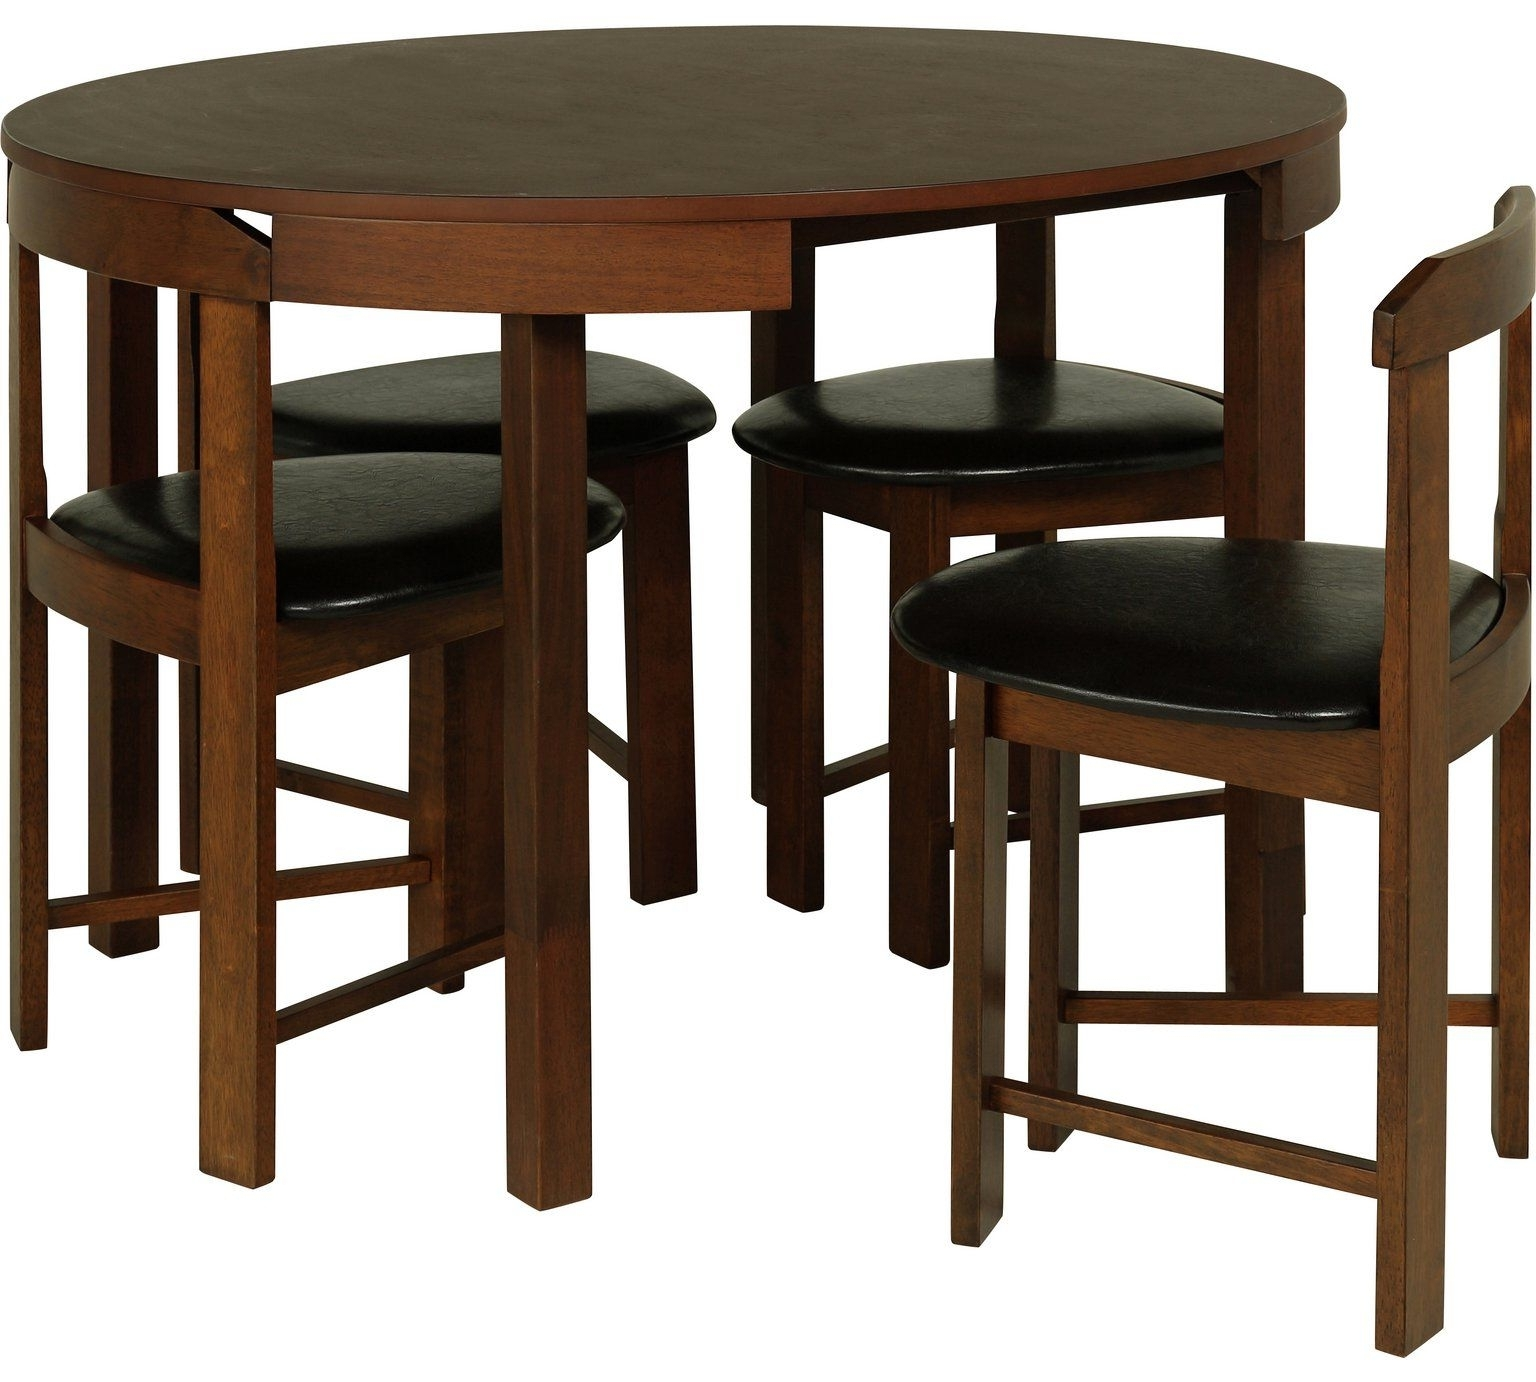 Buy Hygena Alena Circular Solid Wood Table & 4 Chairs – Black At With Most Up To Date Circular Dining Tables For (View 10 of 25)